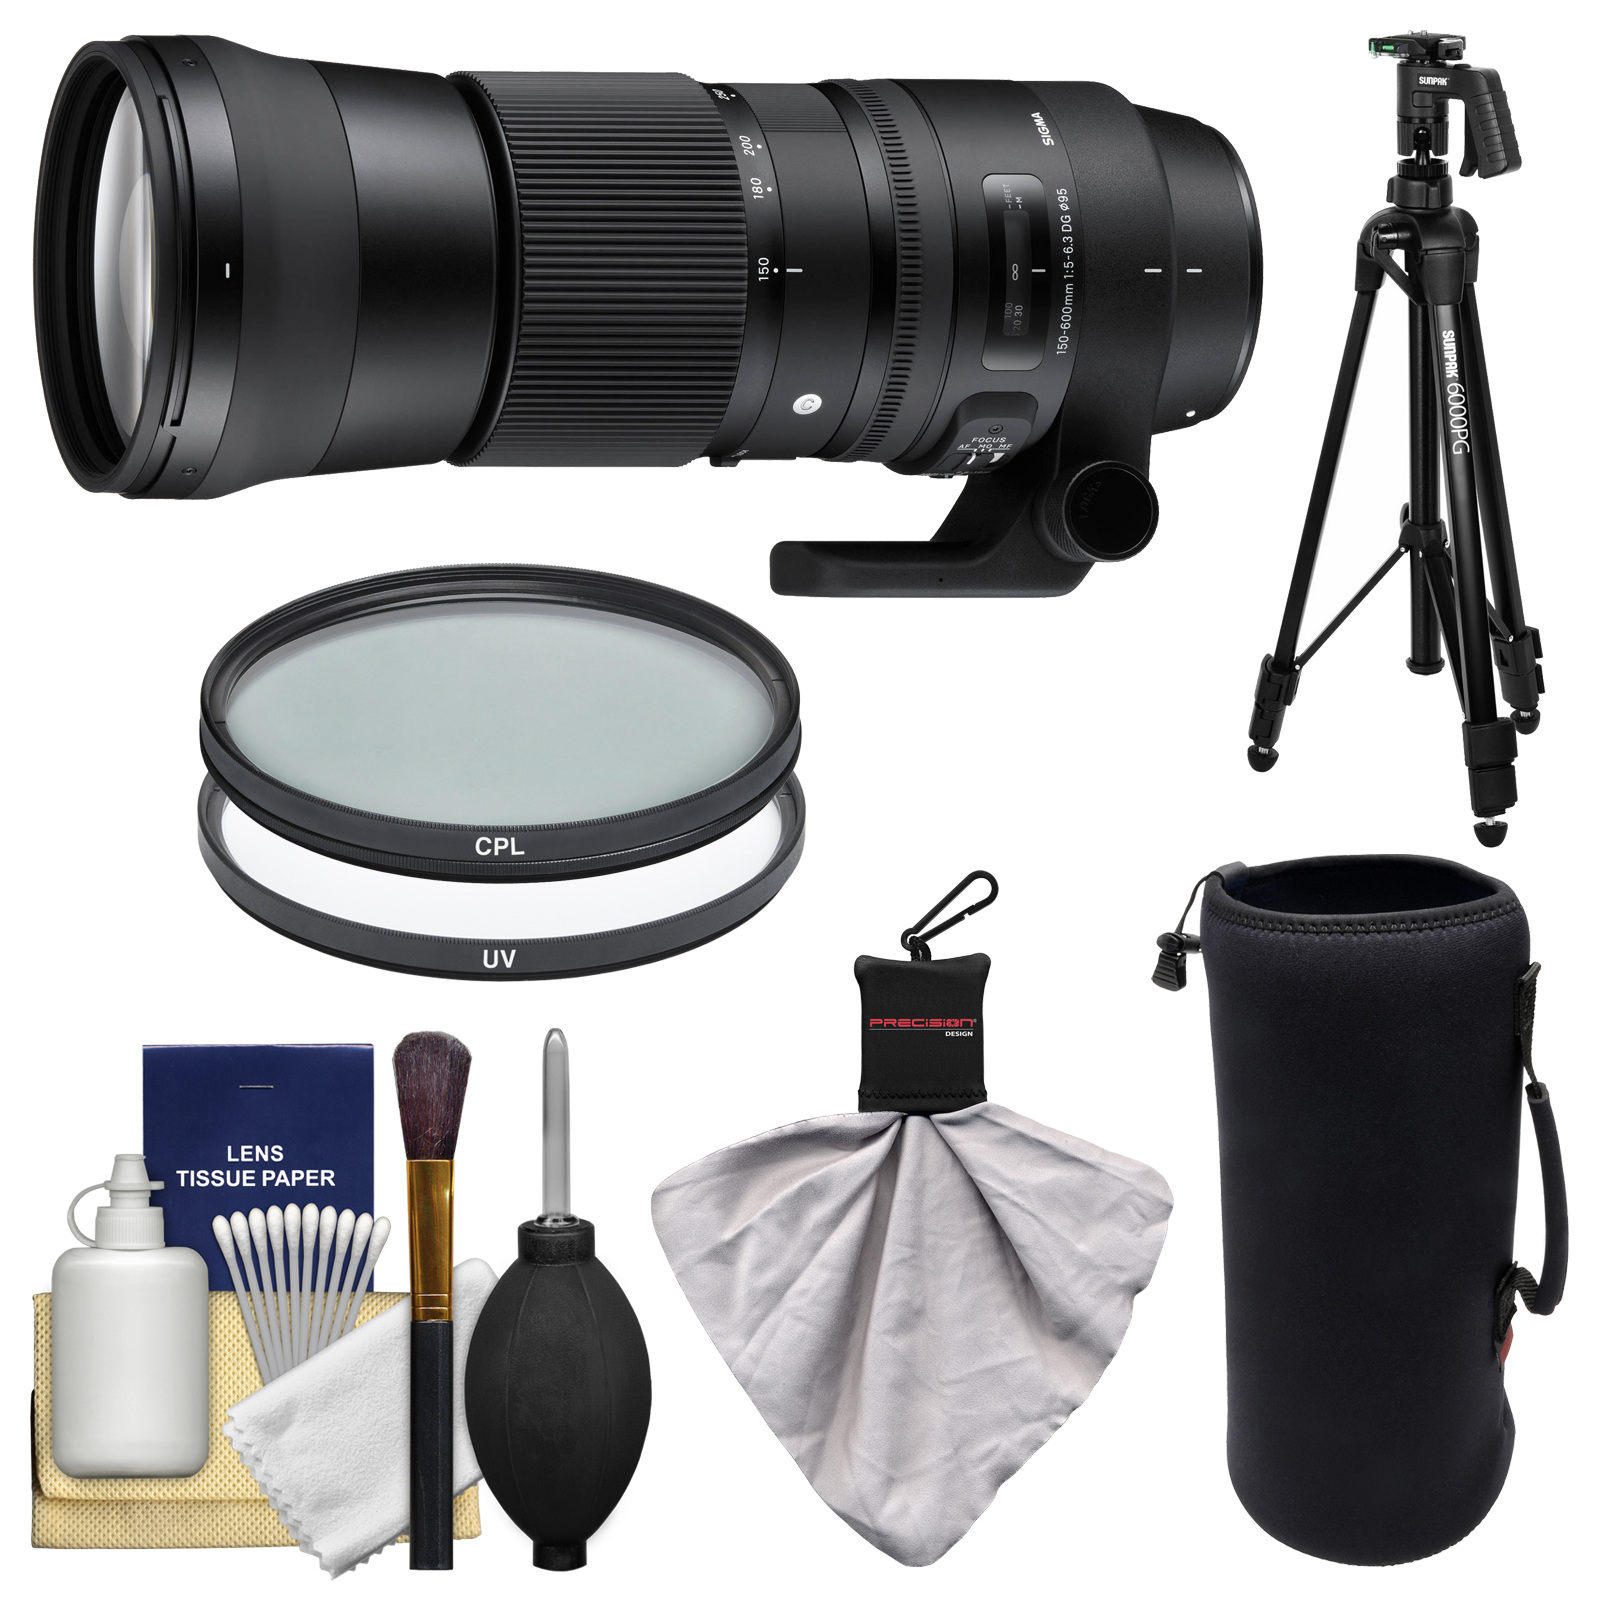 Sigma 150-600mm f/5.0-6.3 Contemporary DG OS HSM Zoom Lens for Canon EOS DSLR Cameras with Pistol Grip Tripod + UV & CPL Filters + Pouch + Kit